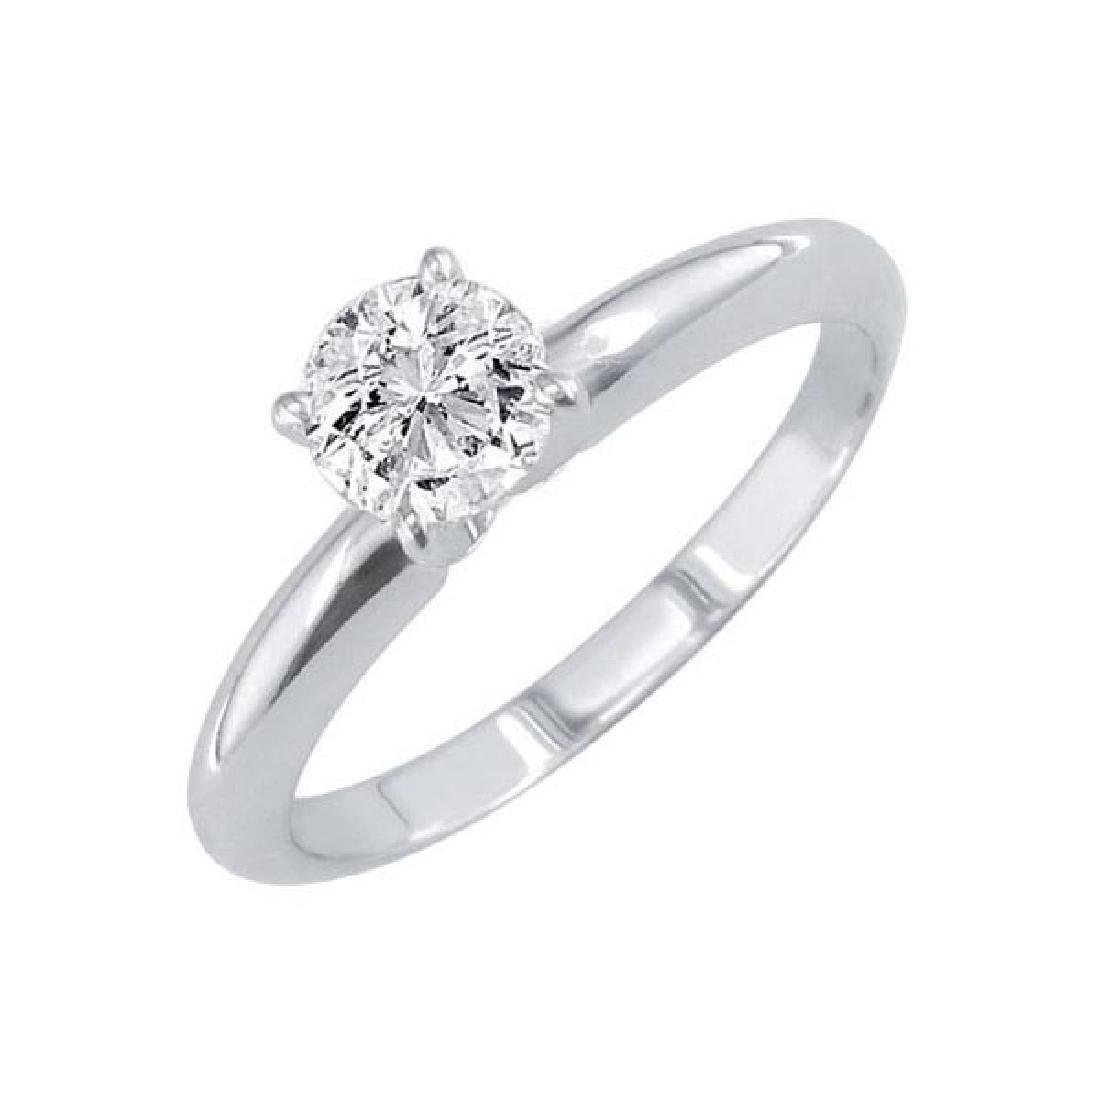 Certified 0.71 CTW Round Diamond Solitaire 14k Ring F/S